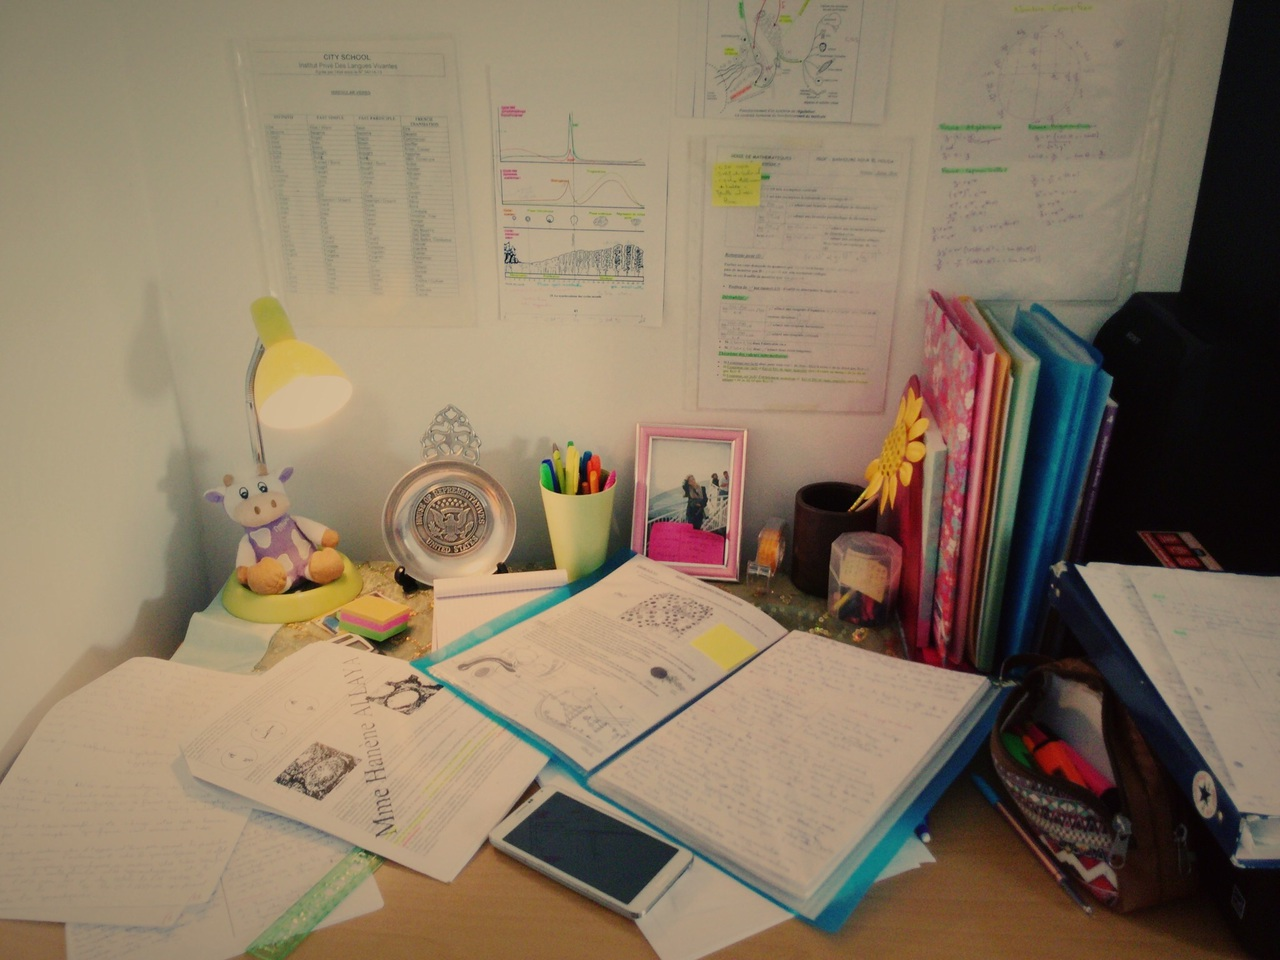 colours, hard, inspiration, learning, love, motivation, science, studies, study, studying, tunisia, working